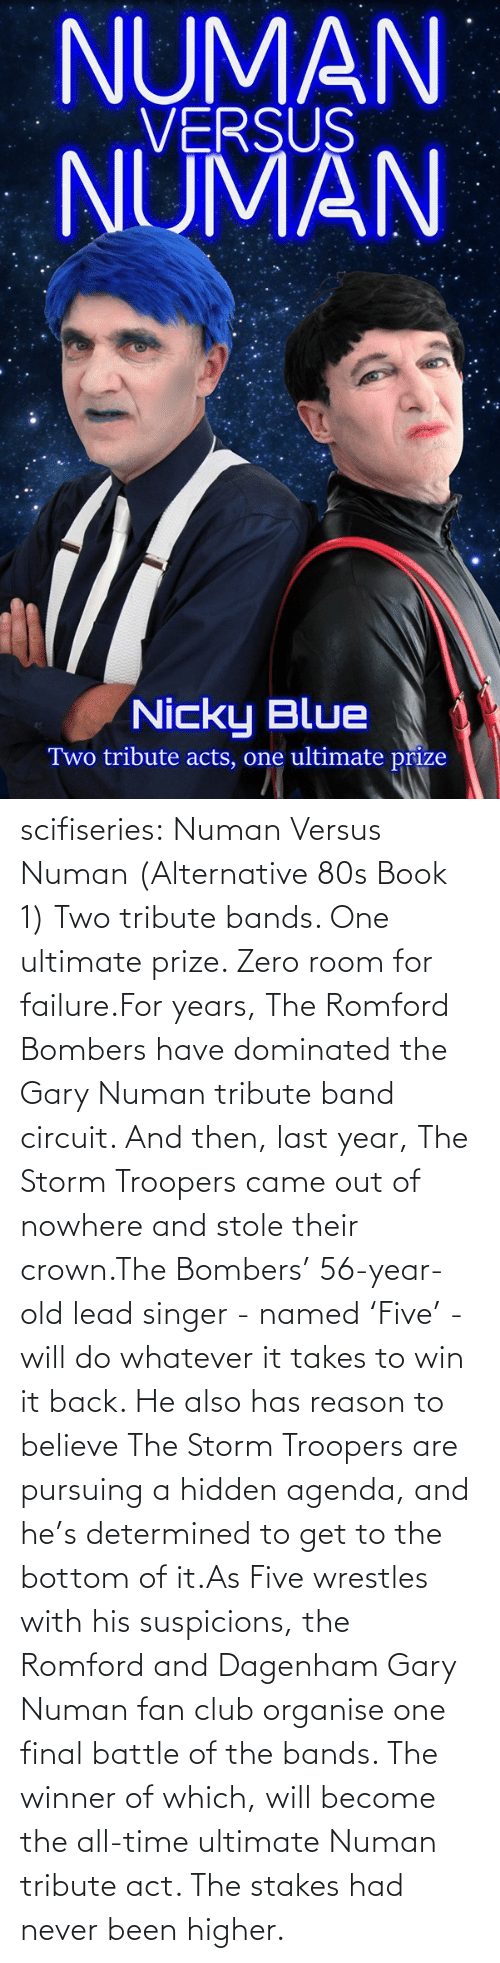 gary: NUMAN  VERSUS  NUMAN  Nicky Blue  Two tribute acts, one ultimate prize scifiseries:  Numan Versus Numan (Alternative 80s Book 1) Two tribute bands. One ultimate prize. Zero room for failure.For  years, The Romford Bombers have dominated the Gary Numan tribute band  circuit. And then, last year, The Storm Troopers came out of nowhere and  stole their crown.The Bombers' 56-year-old lead singer - named  'Five' - will do whatever it takes to win it back. He also has reason to  believe The Storm Troopers are pursuing a hidden agenda, and he's  determined to get to the bottom of it.As Five wrestles with his  suspicions, the Romford and Dagenham Gary Numan fan club organise one  final battle of the bands. The winner of which, will become the all-time  ultimate Numan tribute act. The stakes had never been higher.